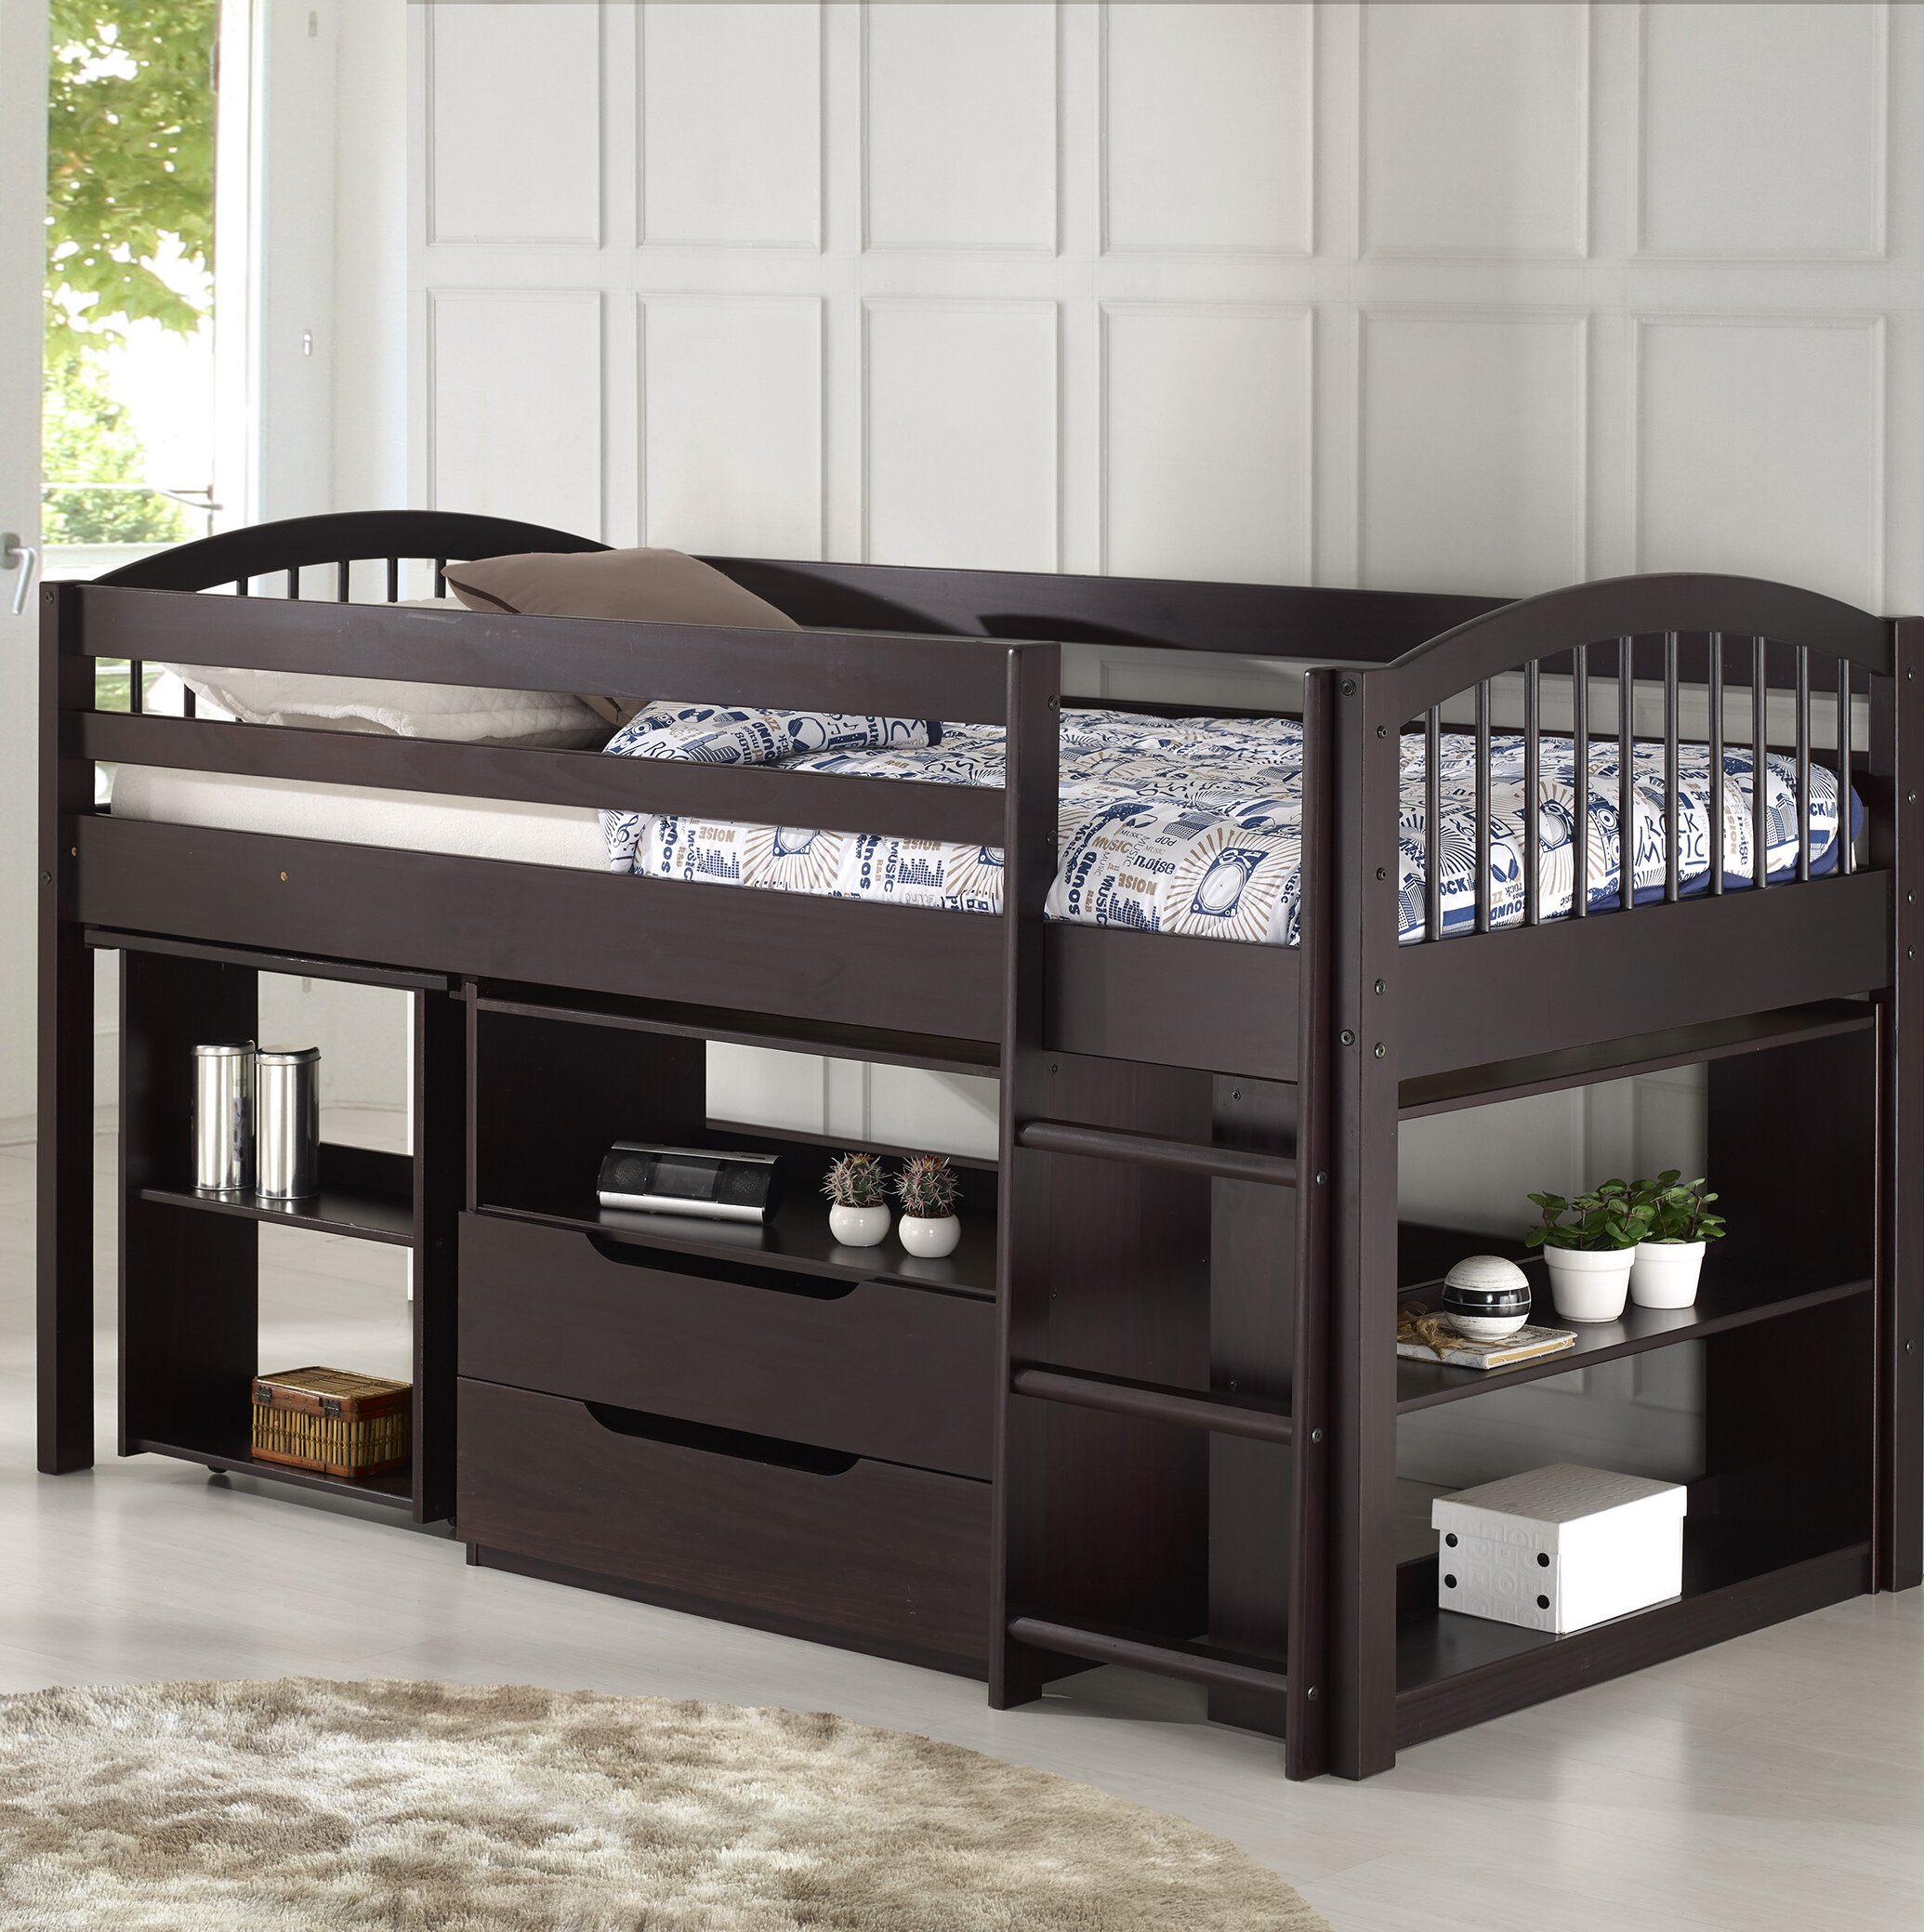 Enjoyable Abigail Twin Loft Bed With Drawers Home Interior And Landscaping Ponolsignezvosmurscom